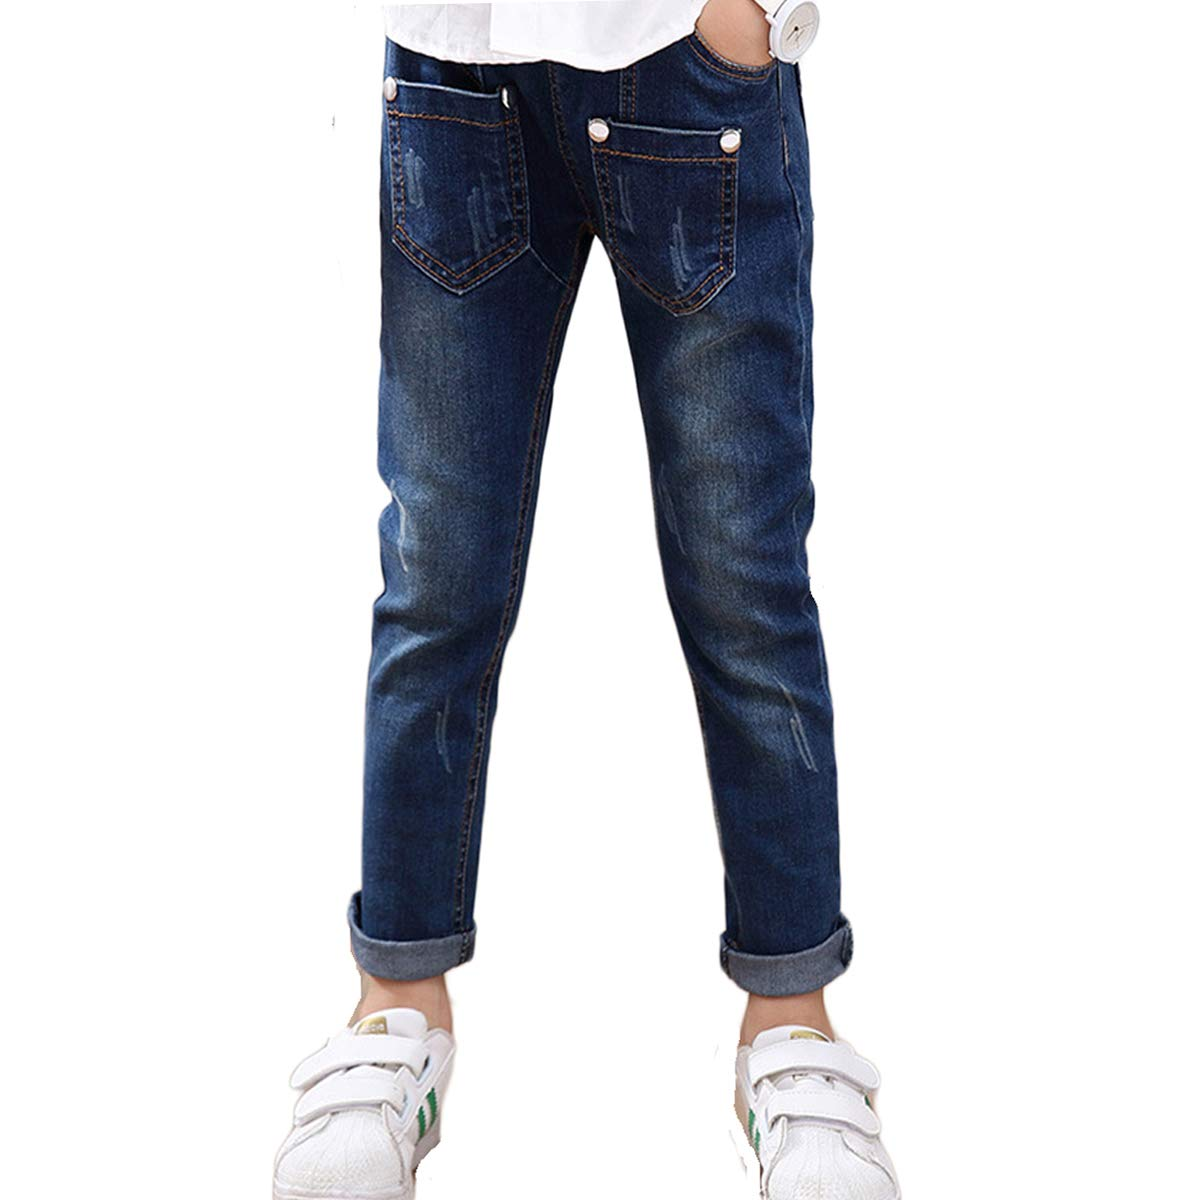 FLOWERKIDS Boys Cotton Washed Jeans Slim Fitted Washed Cotton Stretch Denim Pants 4-12 Years